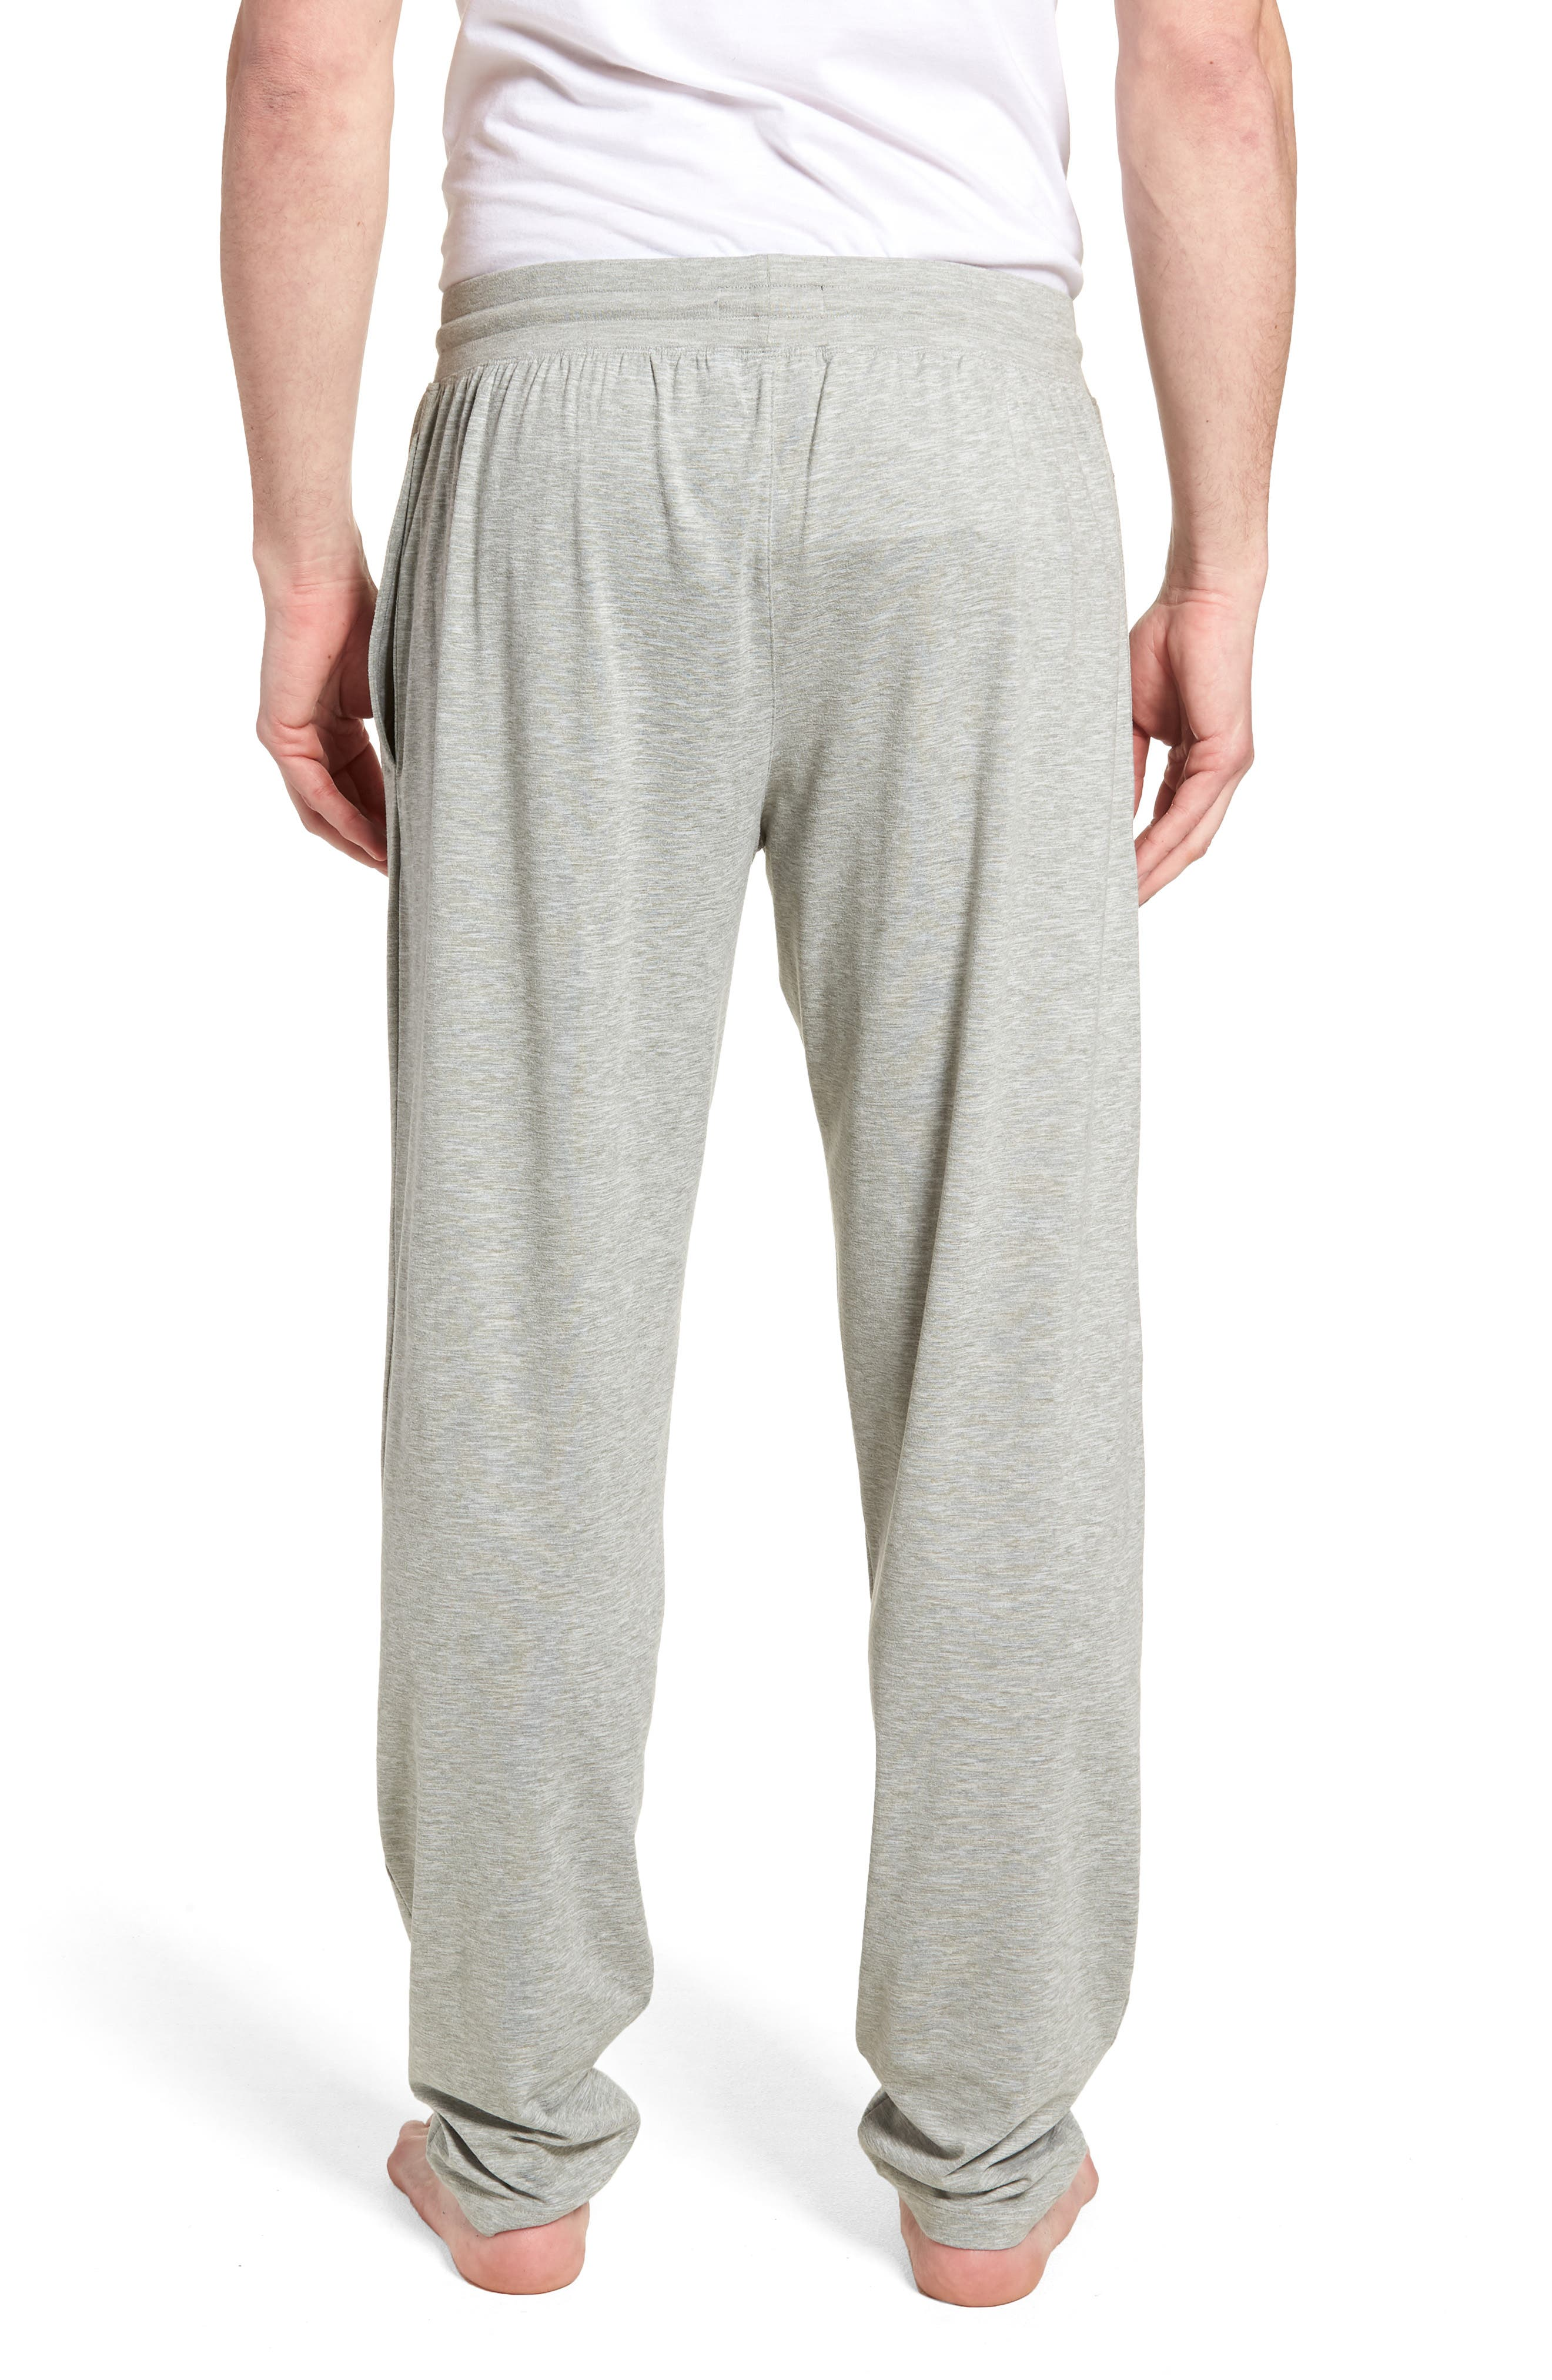 POLO RALPH LAUREN,                             Therma Lounge Pants,                             Alternate thumbnail 2, color,                             033